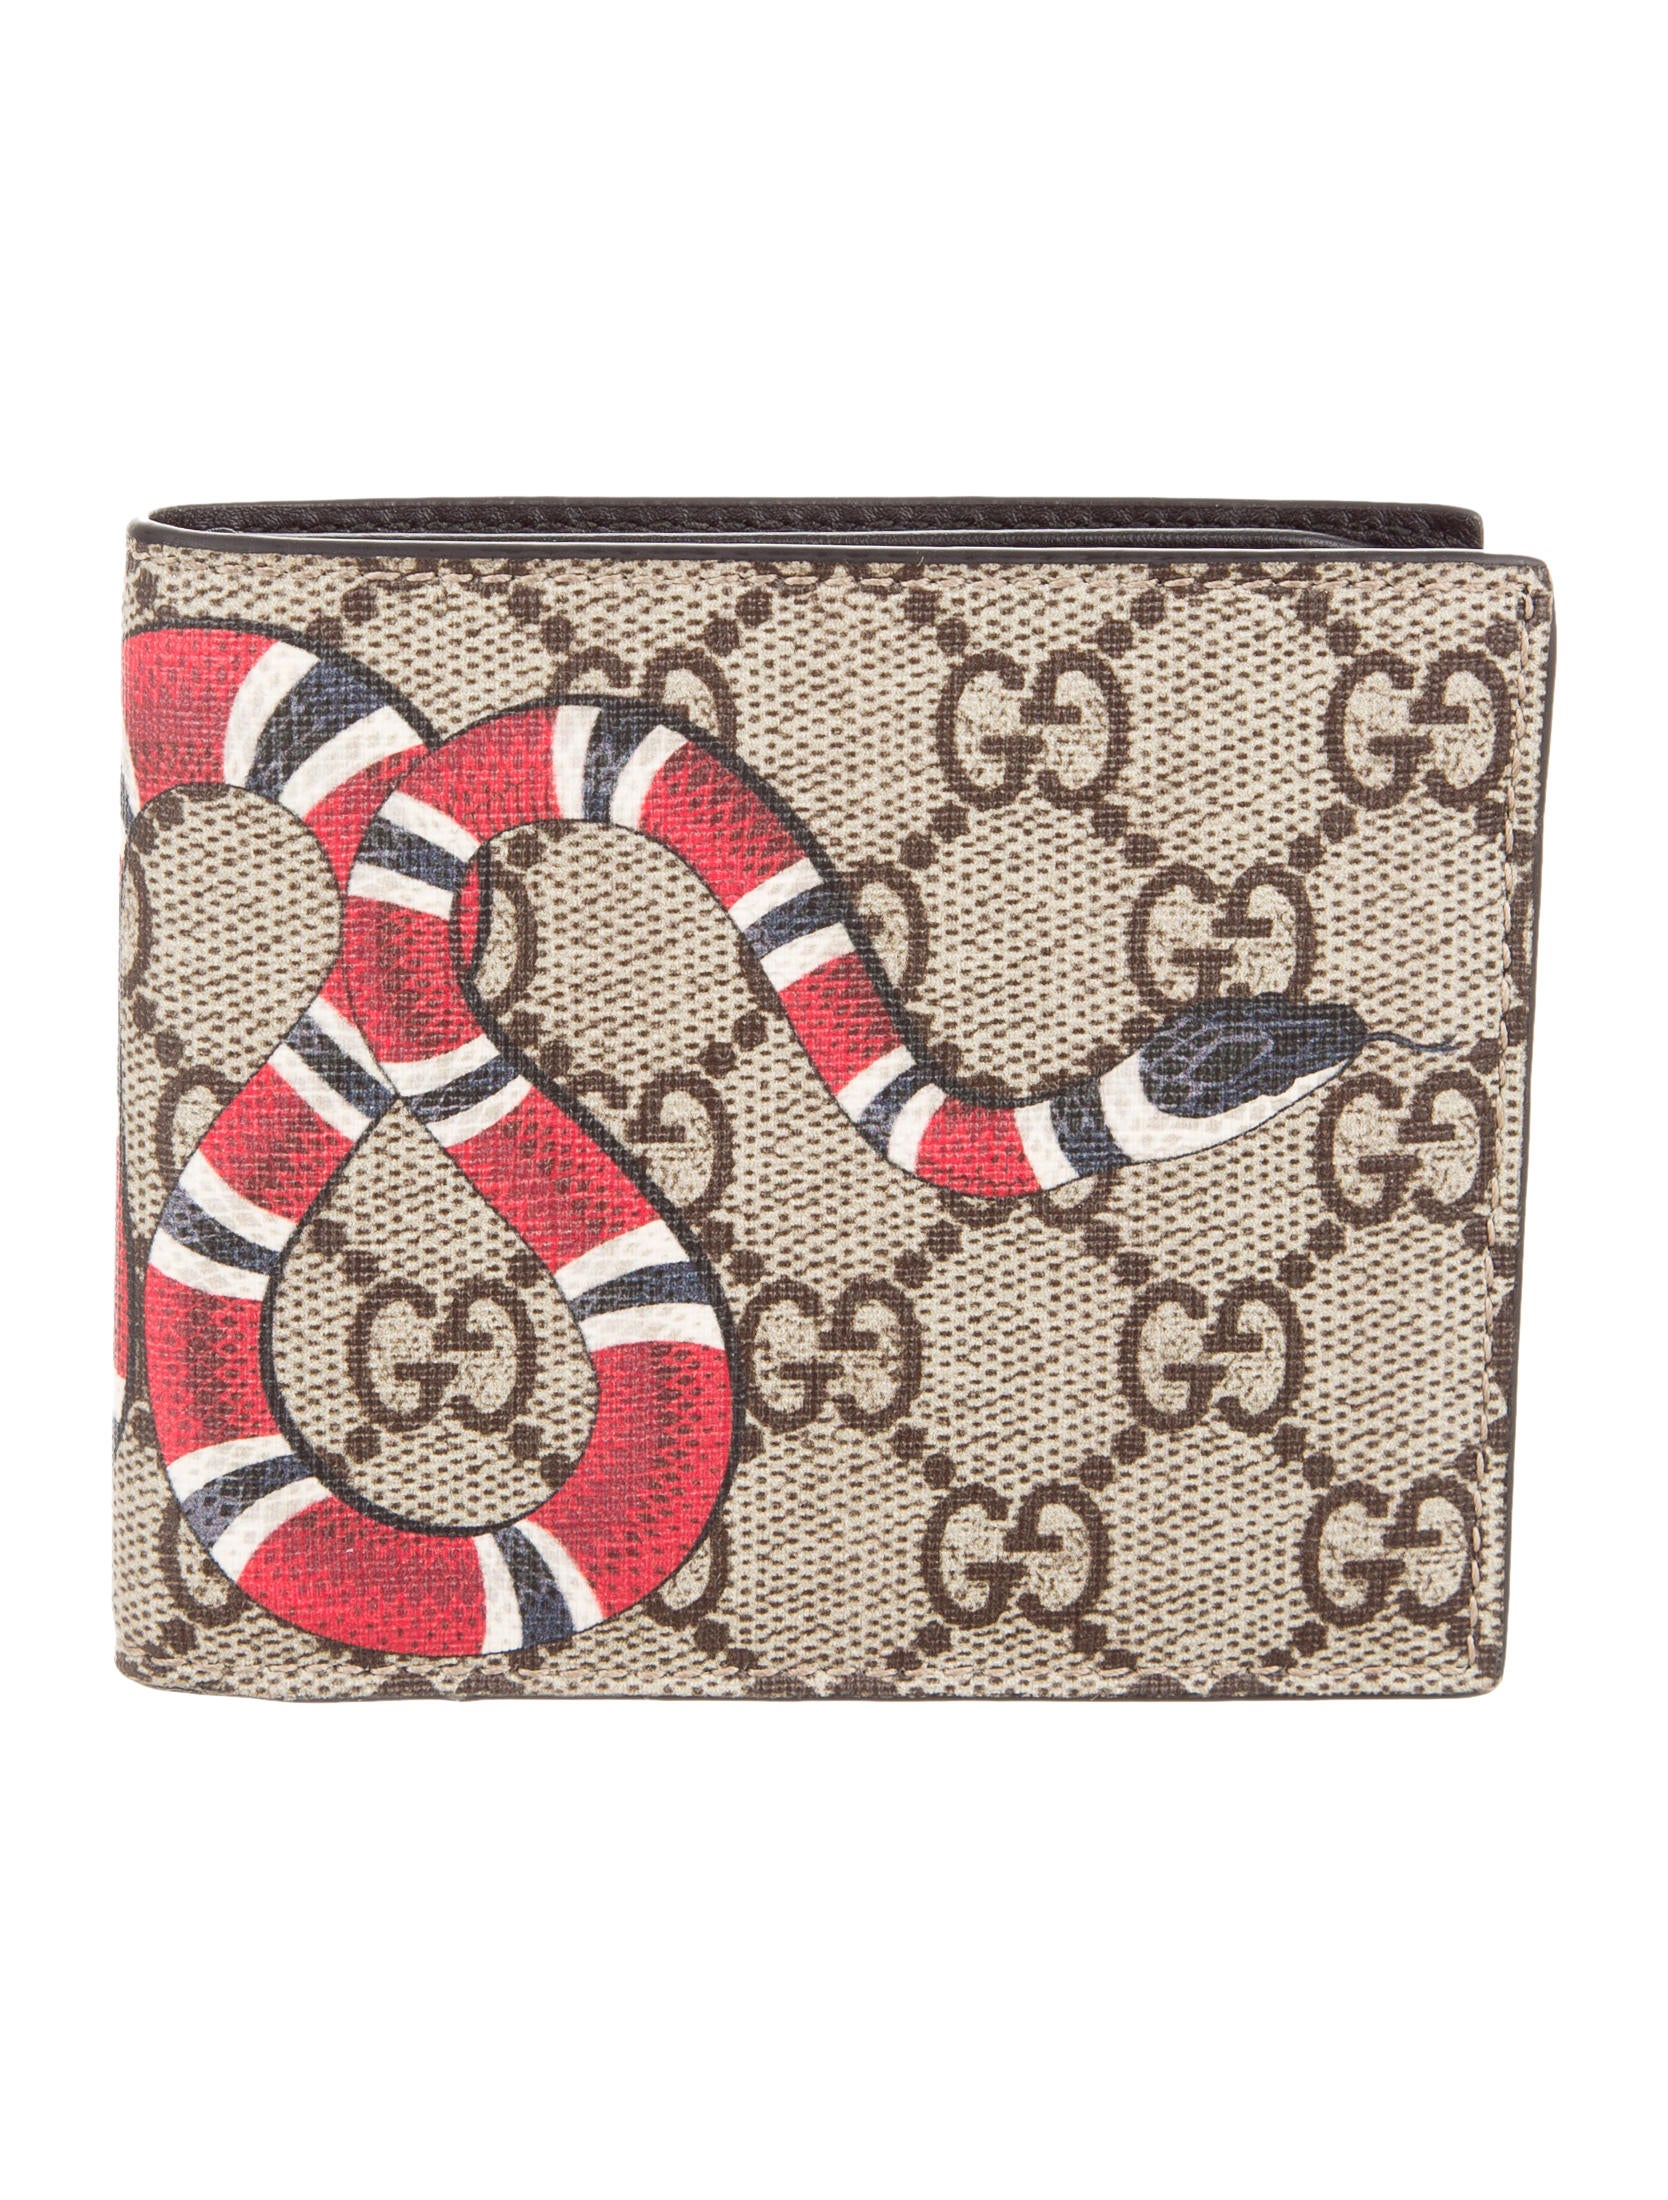 69cbf61563c63c Gucci Mens Wallet Kingsnake | Stanford Center for Opportunity Policy ...